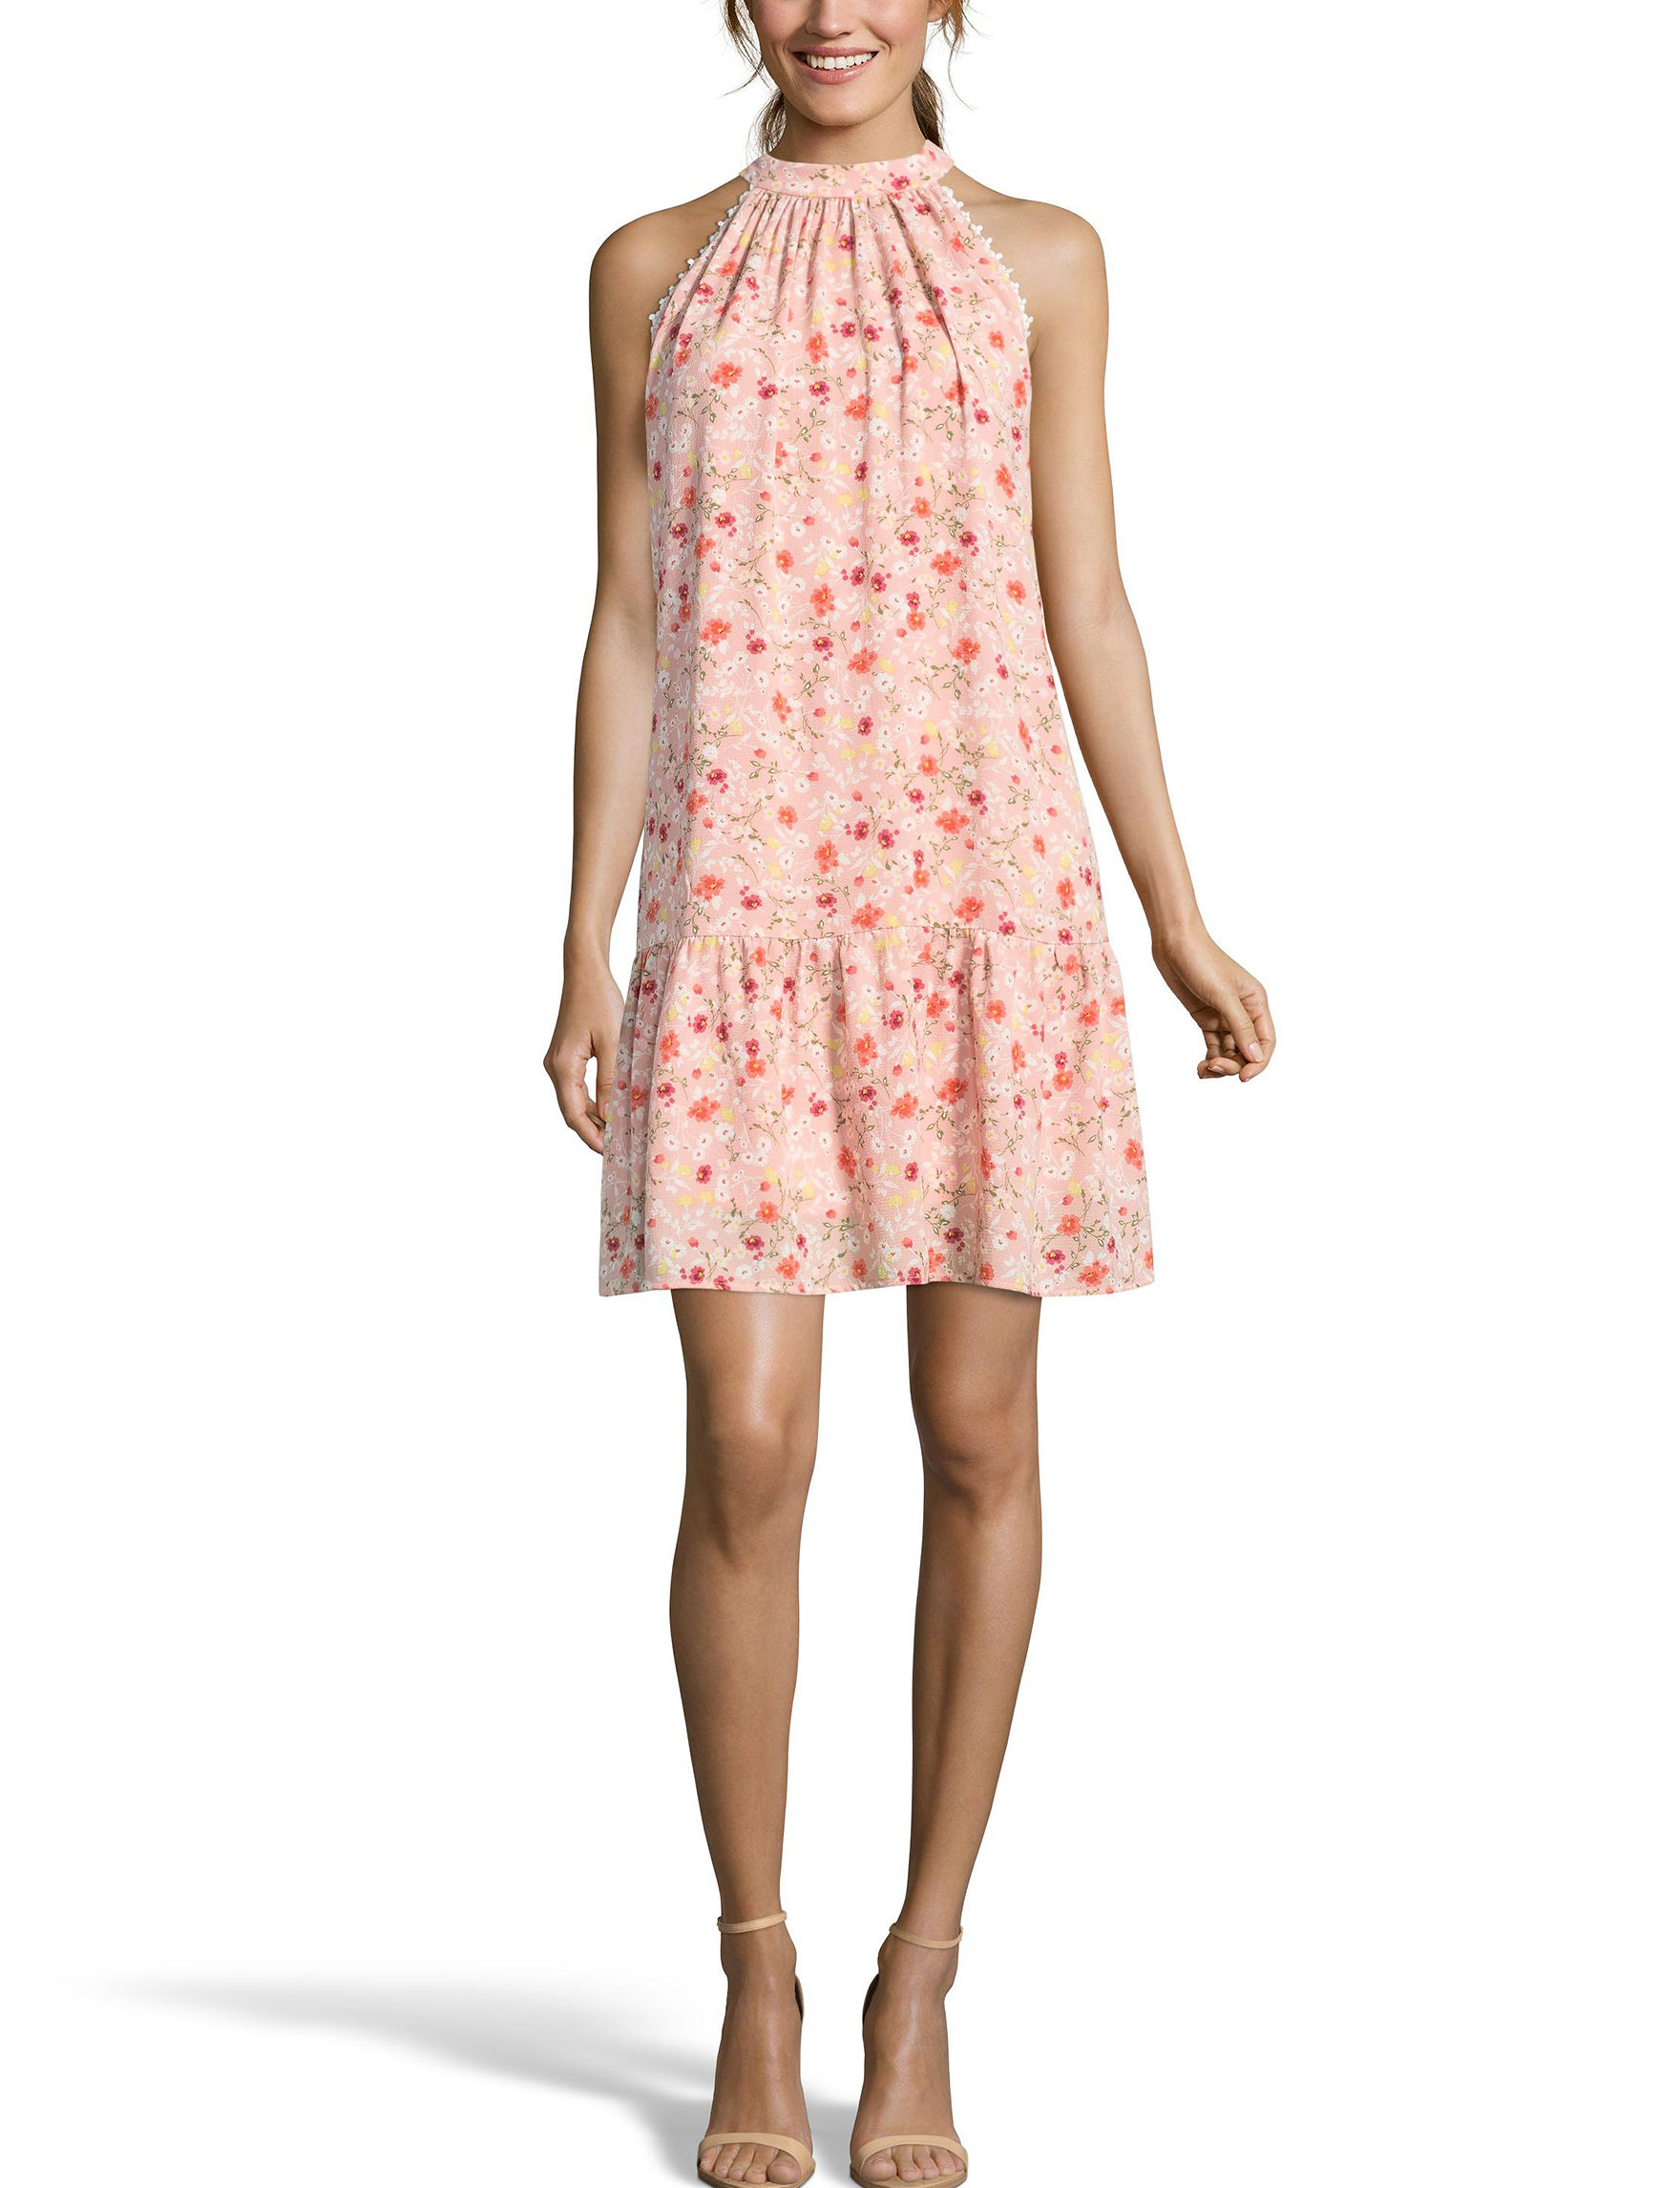 Nicole Miller Pink Everyday & Casual